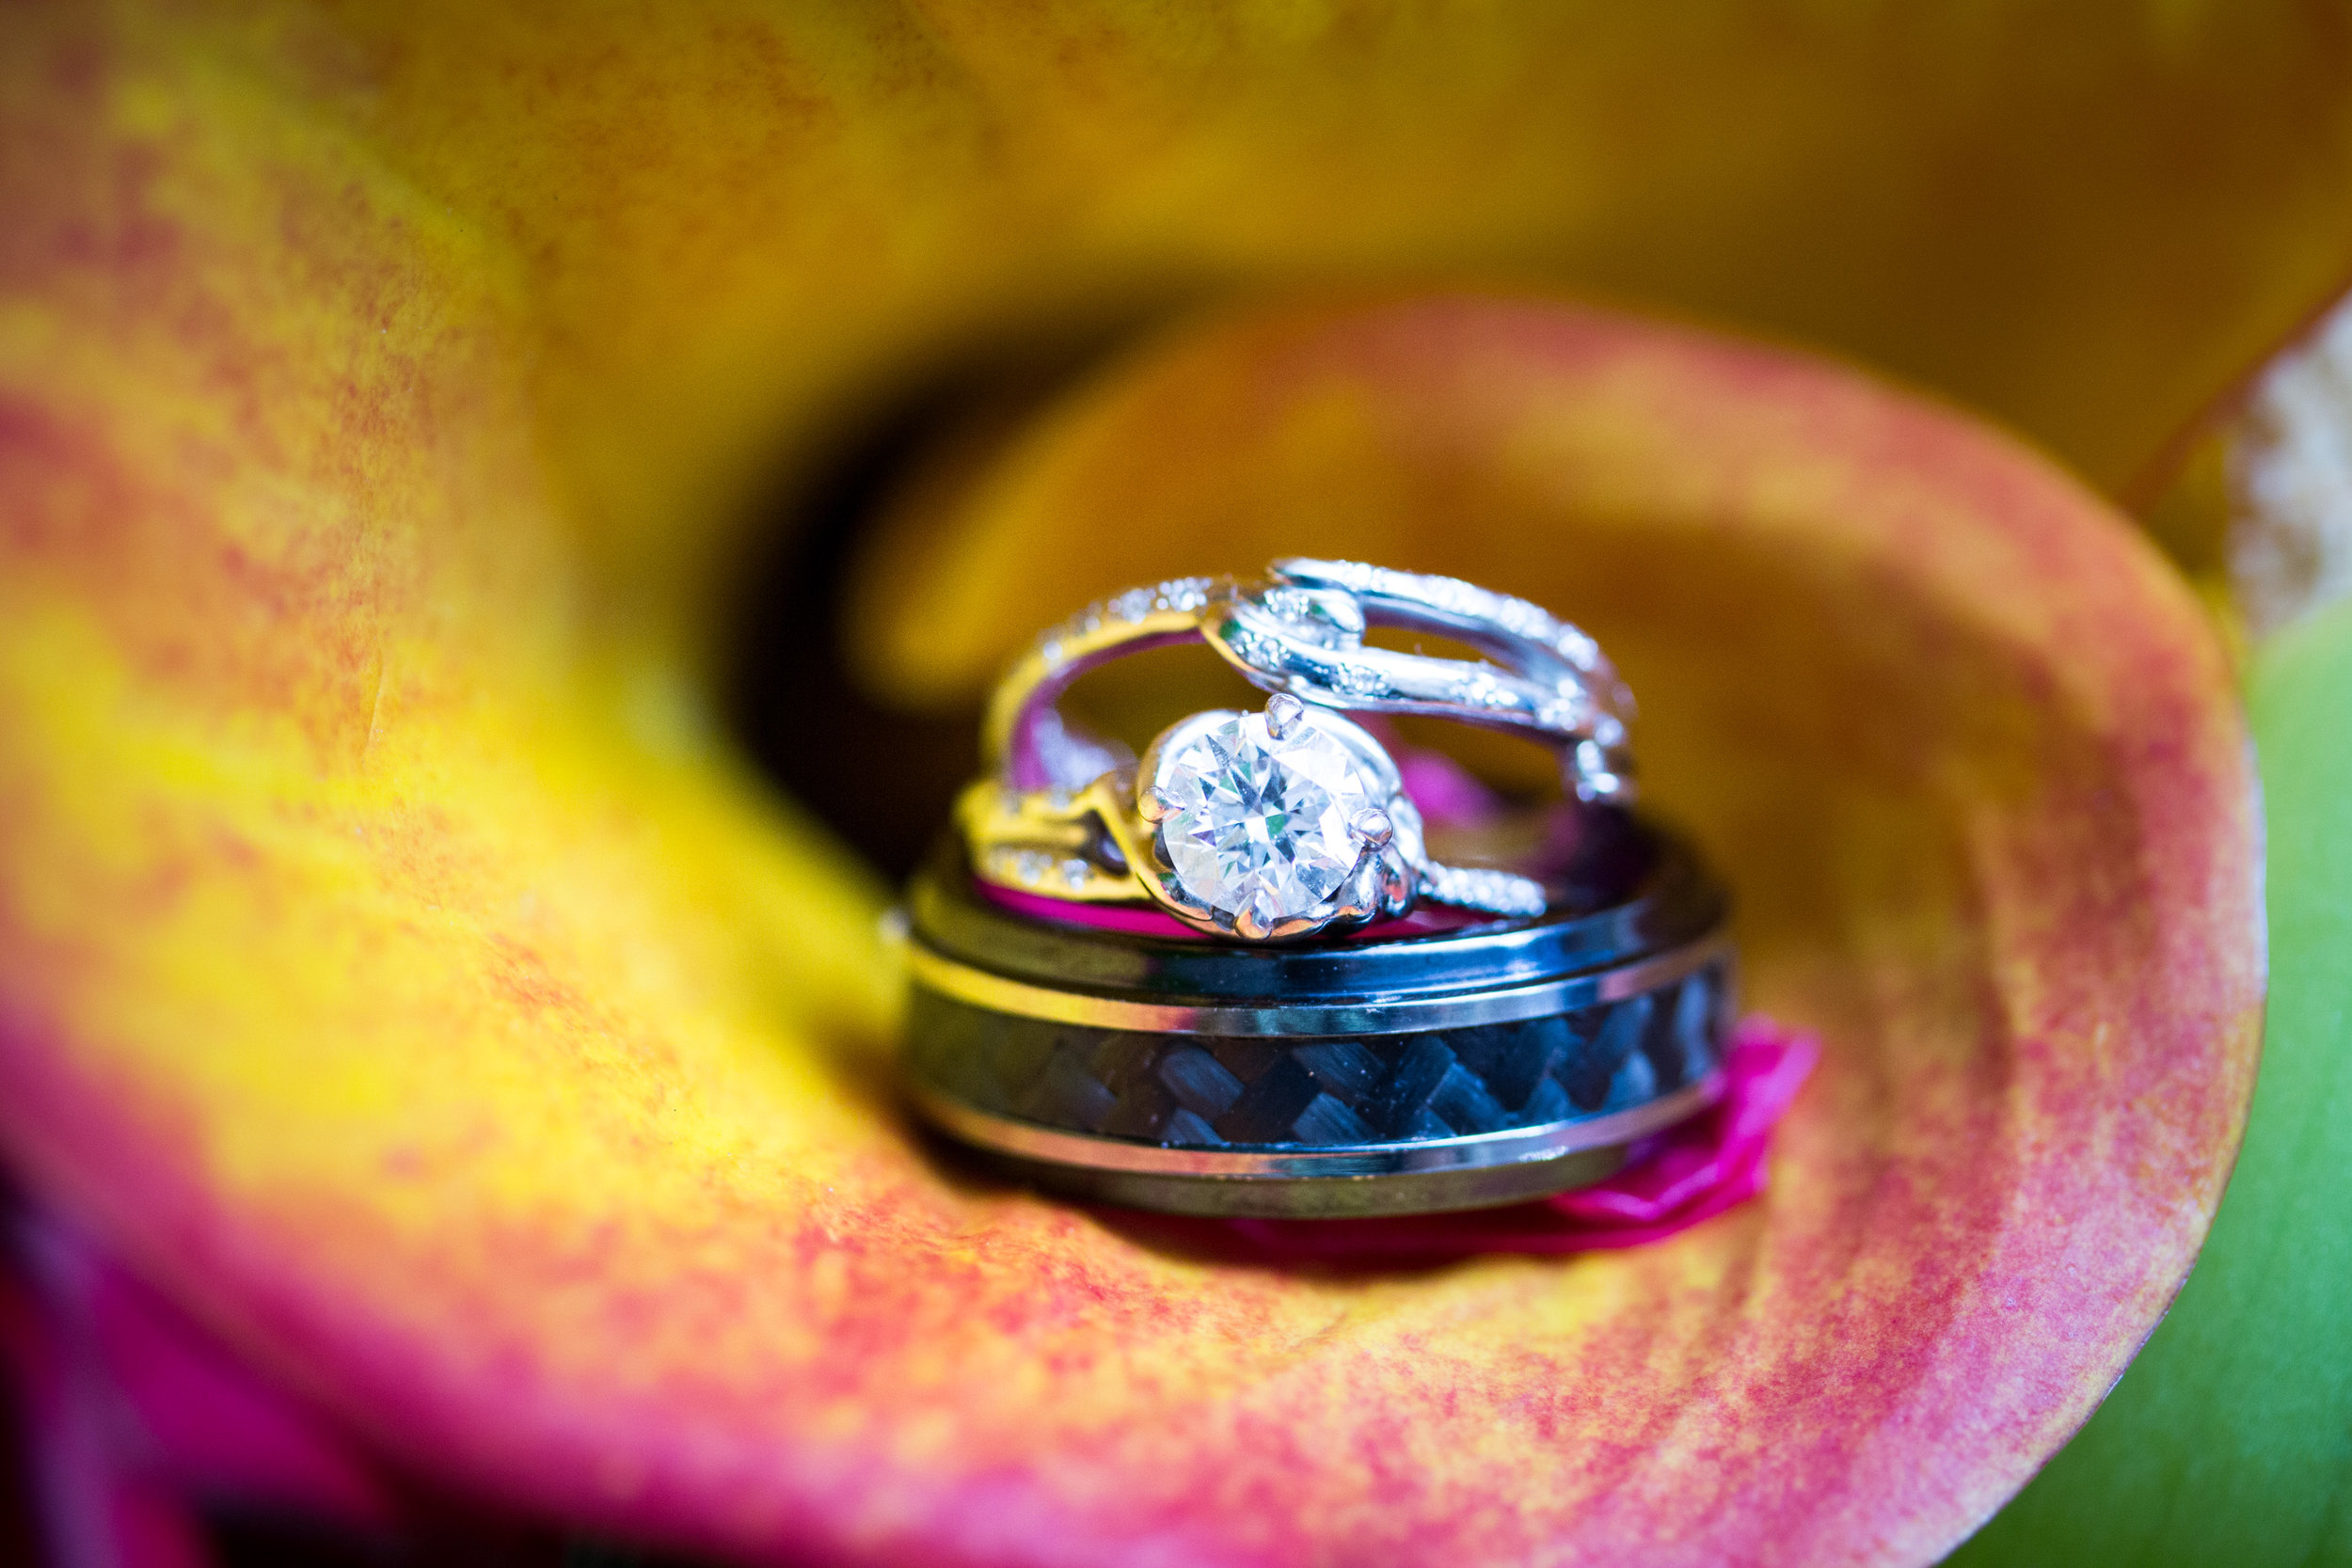 karrie-porter-wedding-detail-shot-diamond-ring-in-cala-lily.jpg